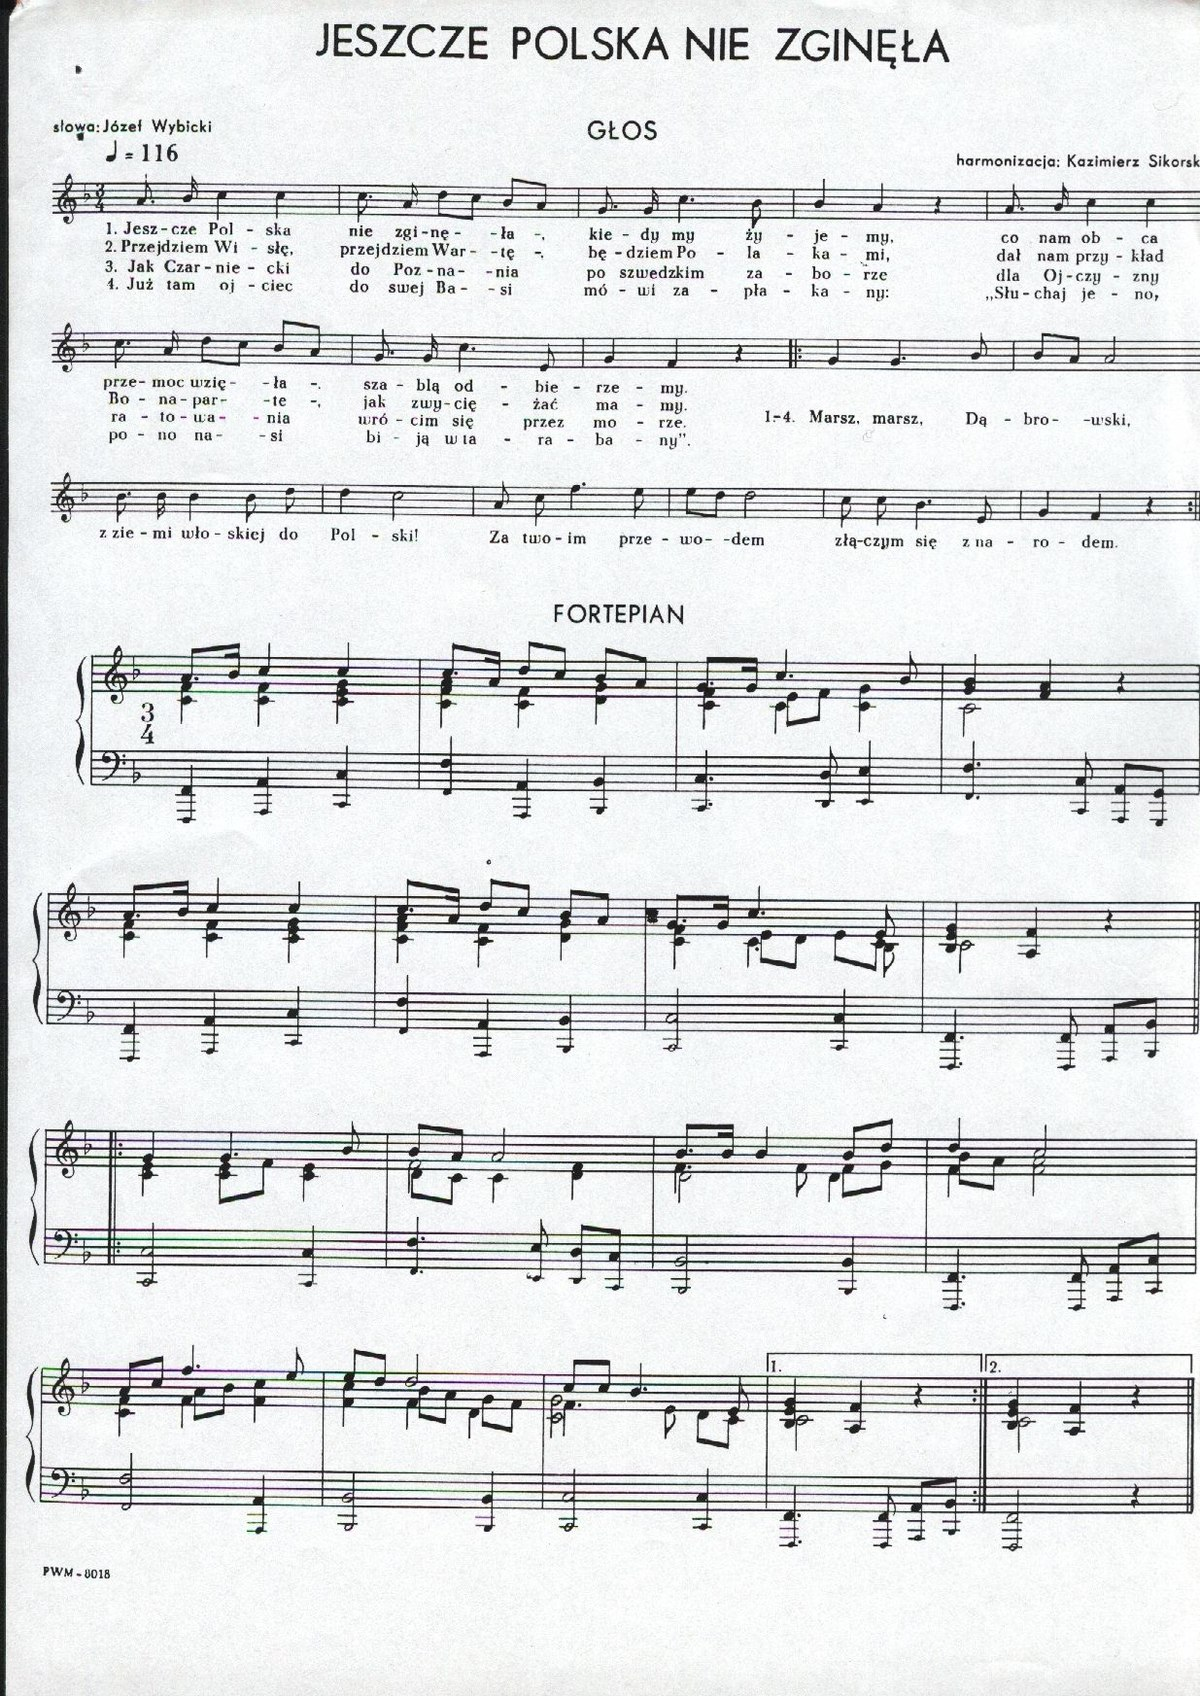 photo regarding Lost Boy Piano Sheet Music Free Printable referred to as Poland Is Not Nonetheless Missing - Wikipedia